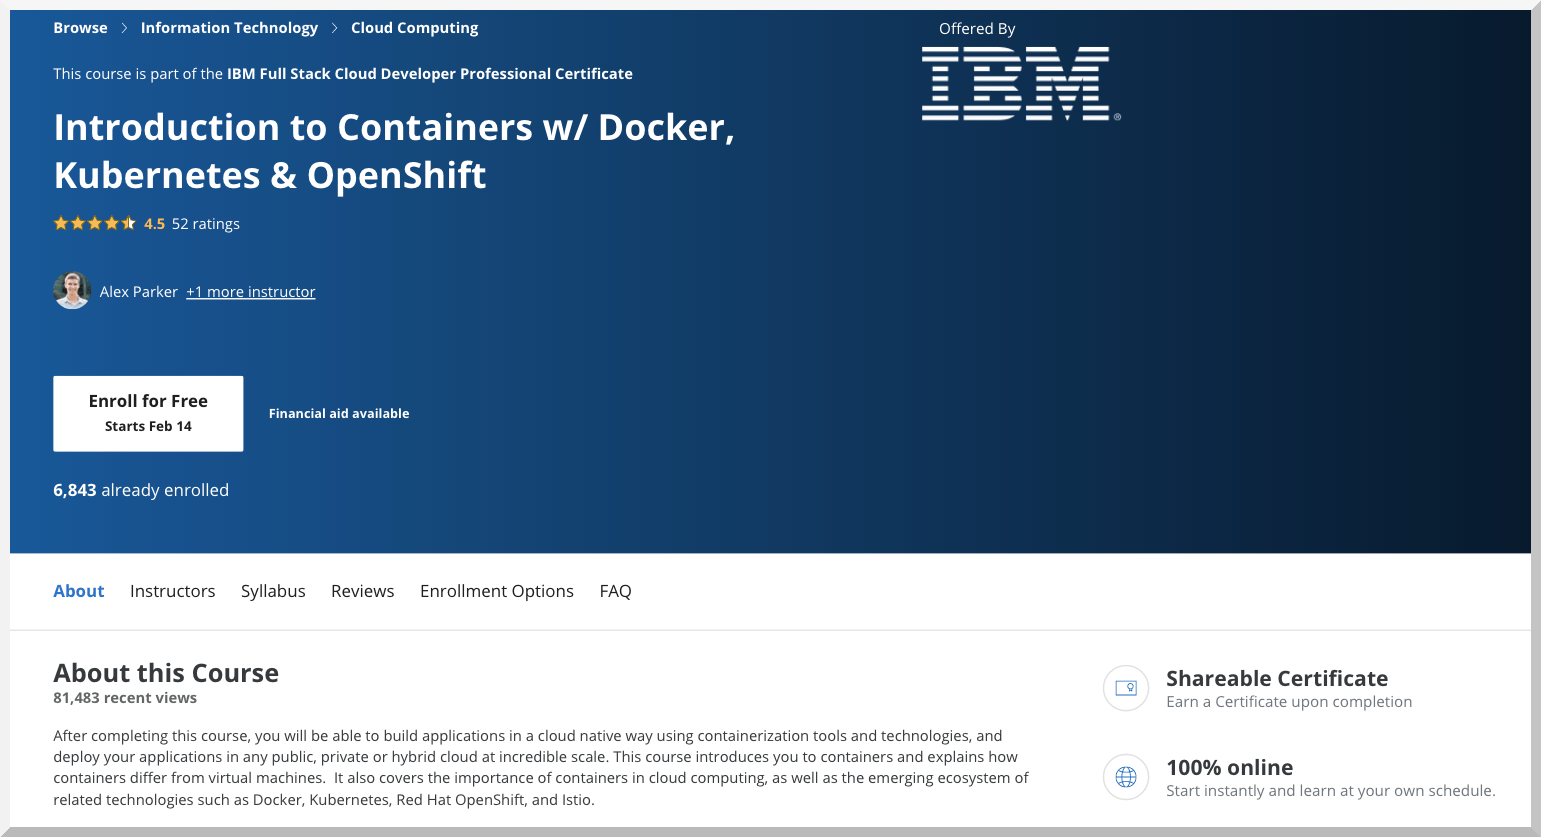 Introduction to Containers w:Docker, Kubernetes & Openshift – IBM – Coursera